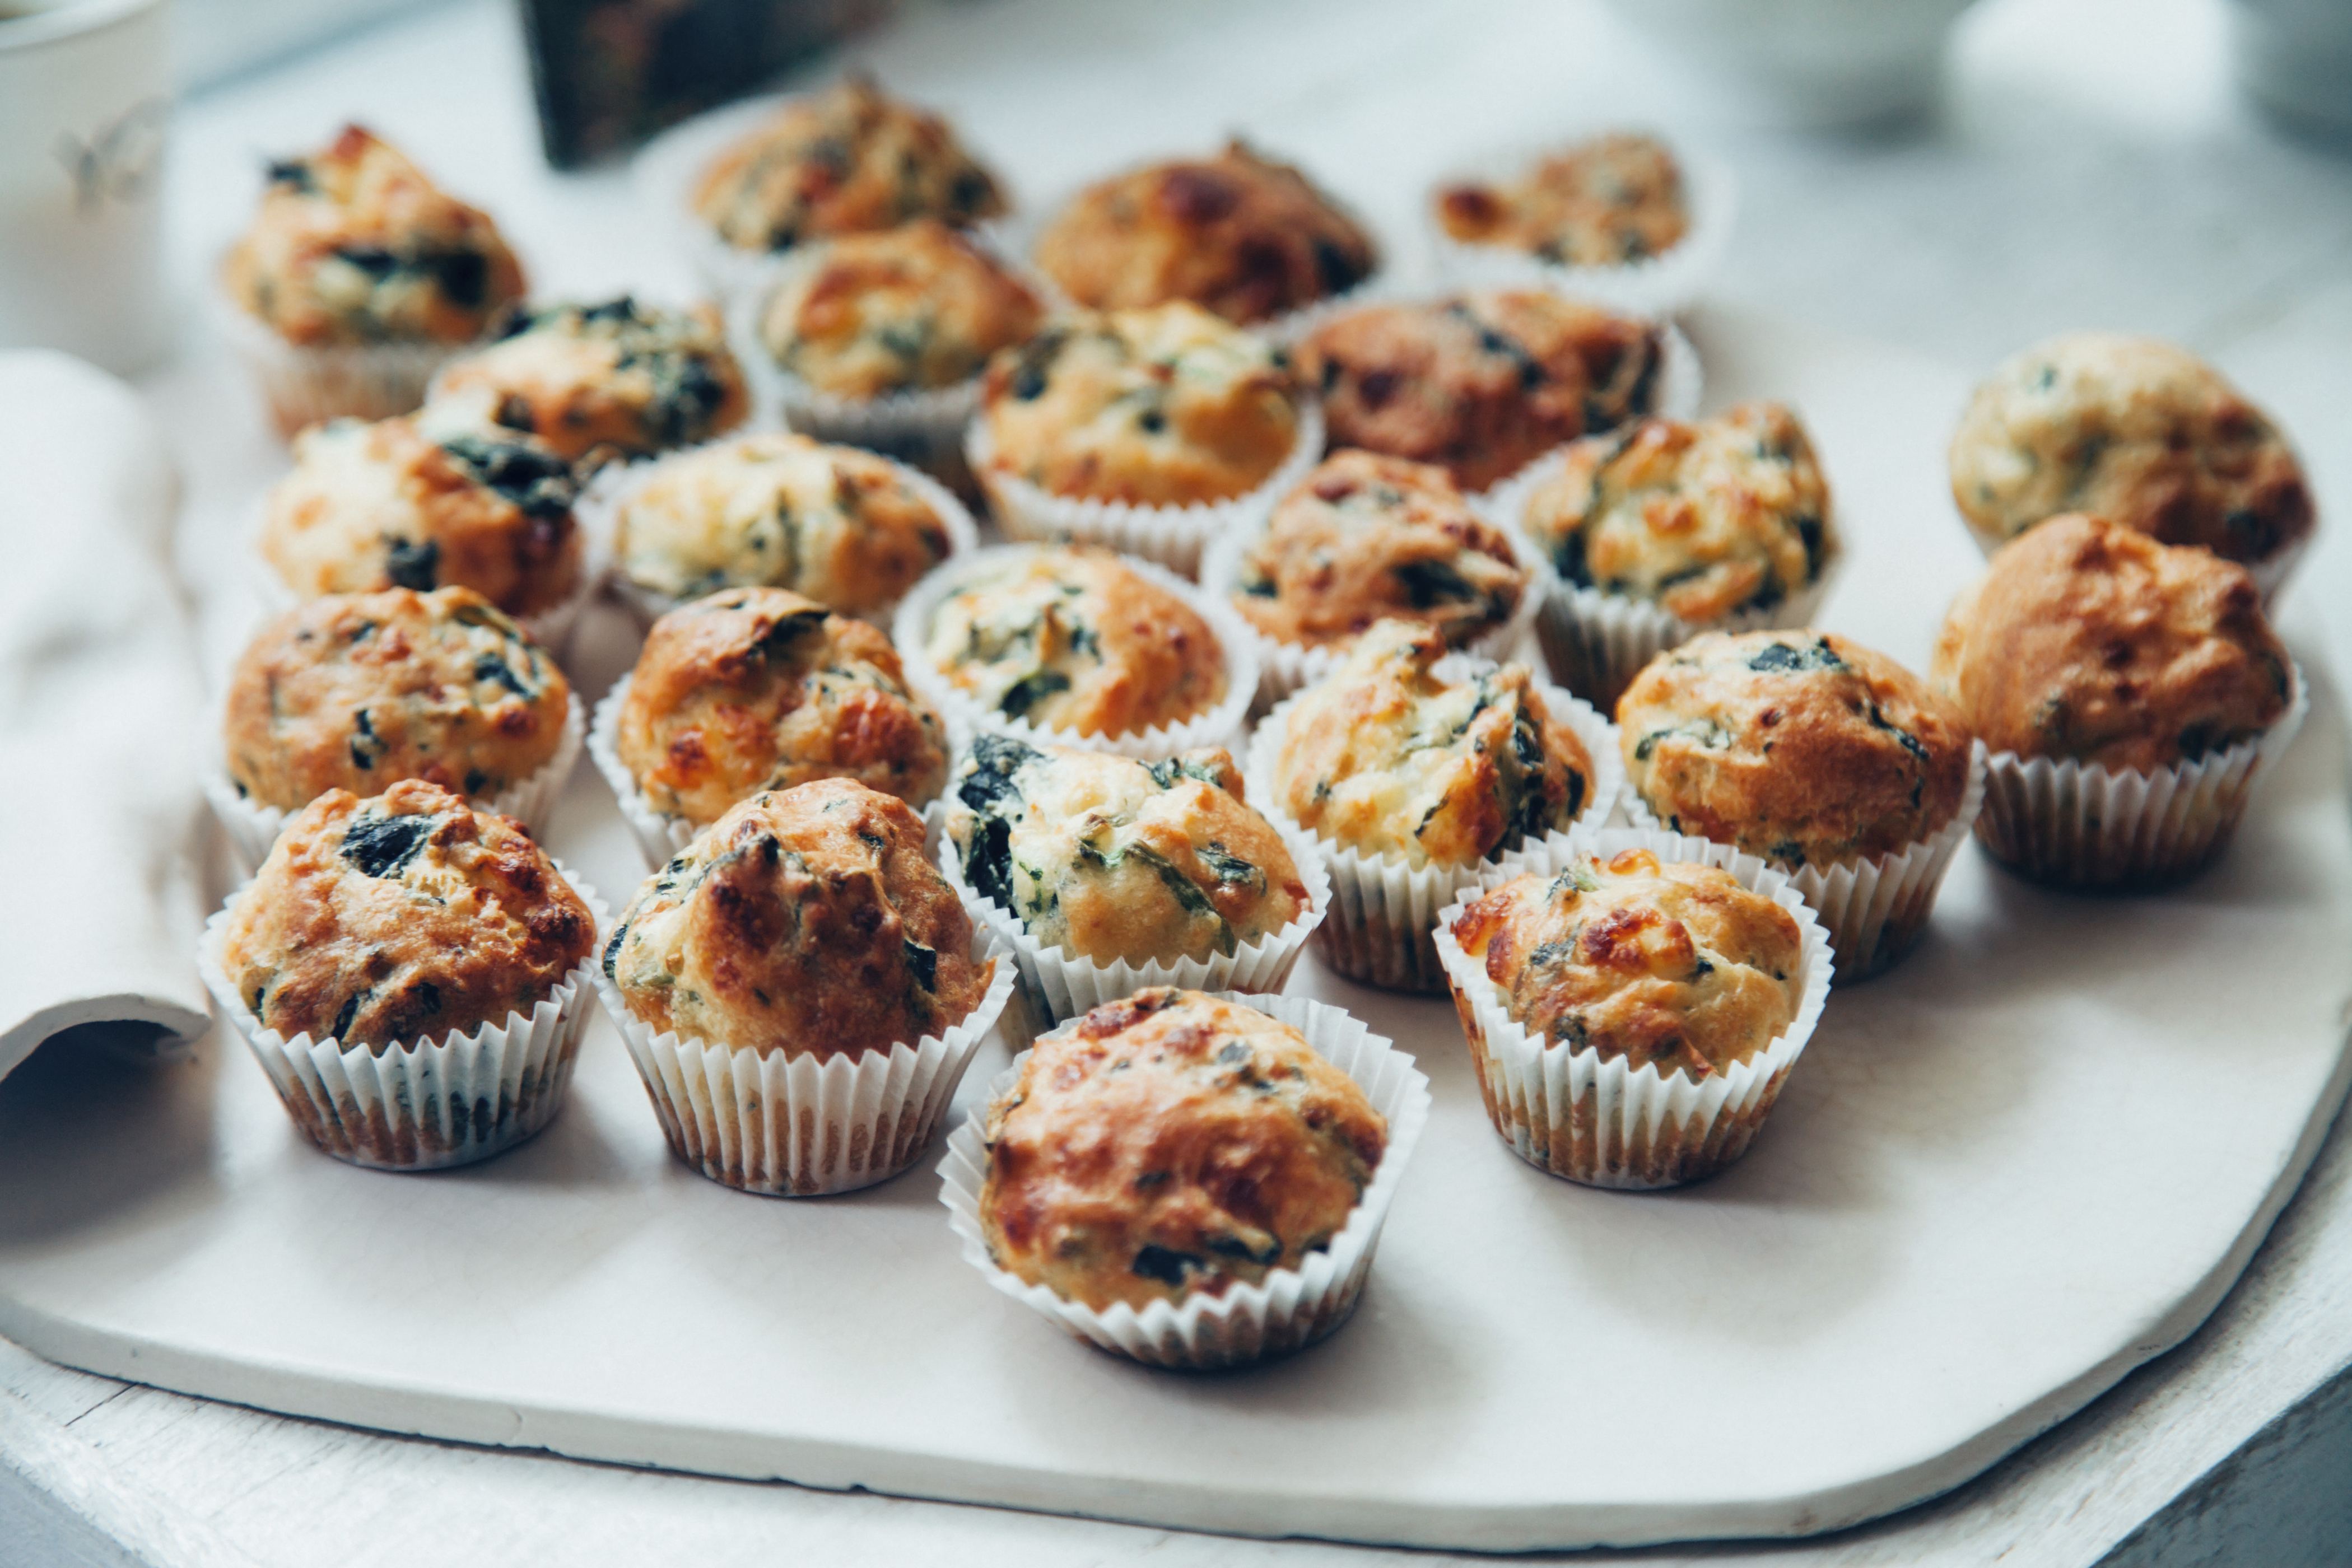 Mini fresh savory vegetable muffins with cheddar cheese, green onions, zucchini and spinach on the white dish